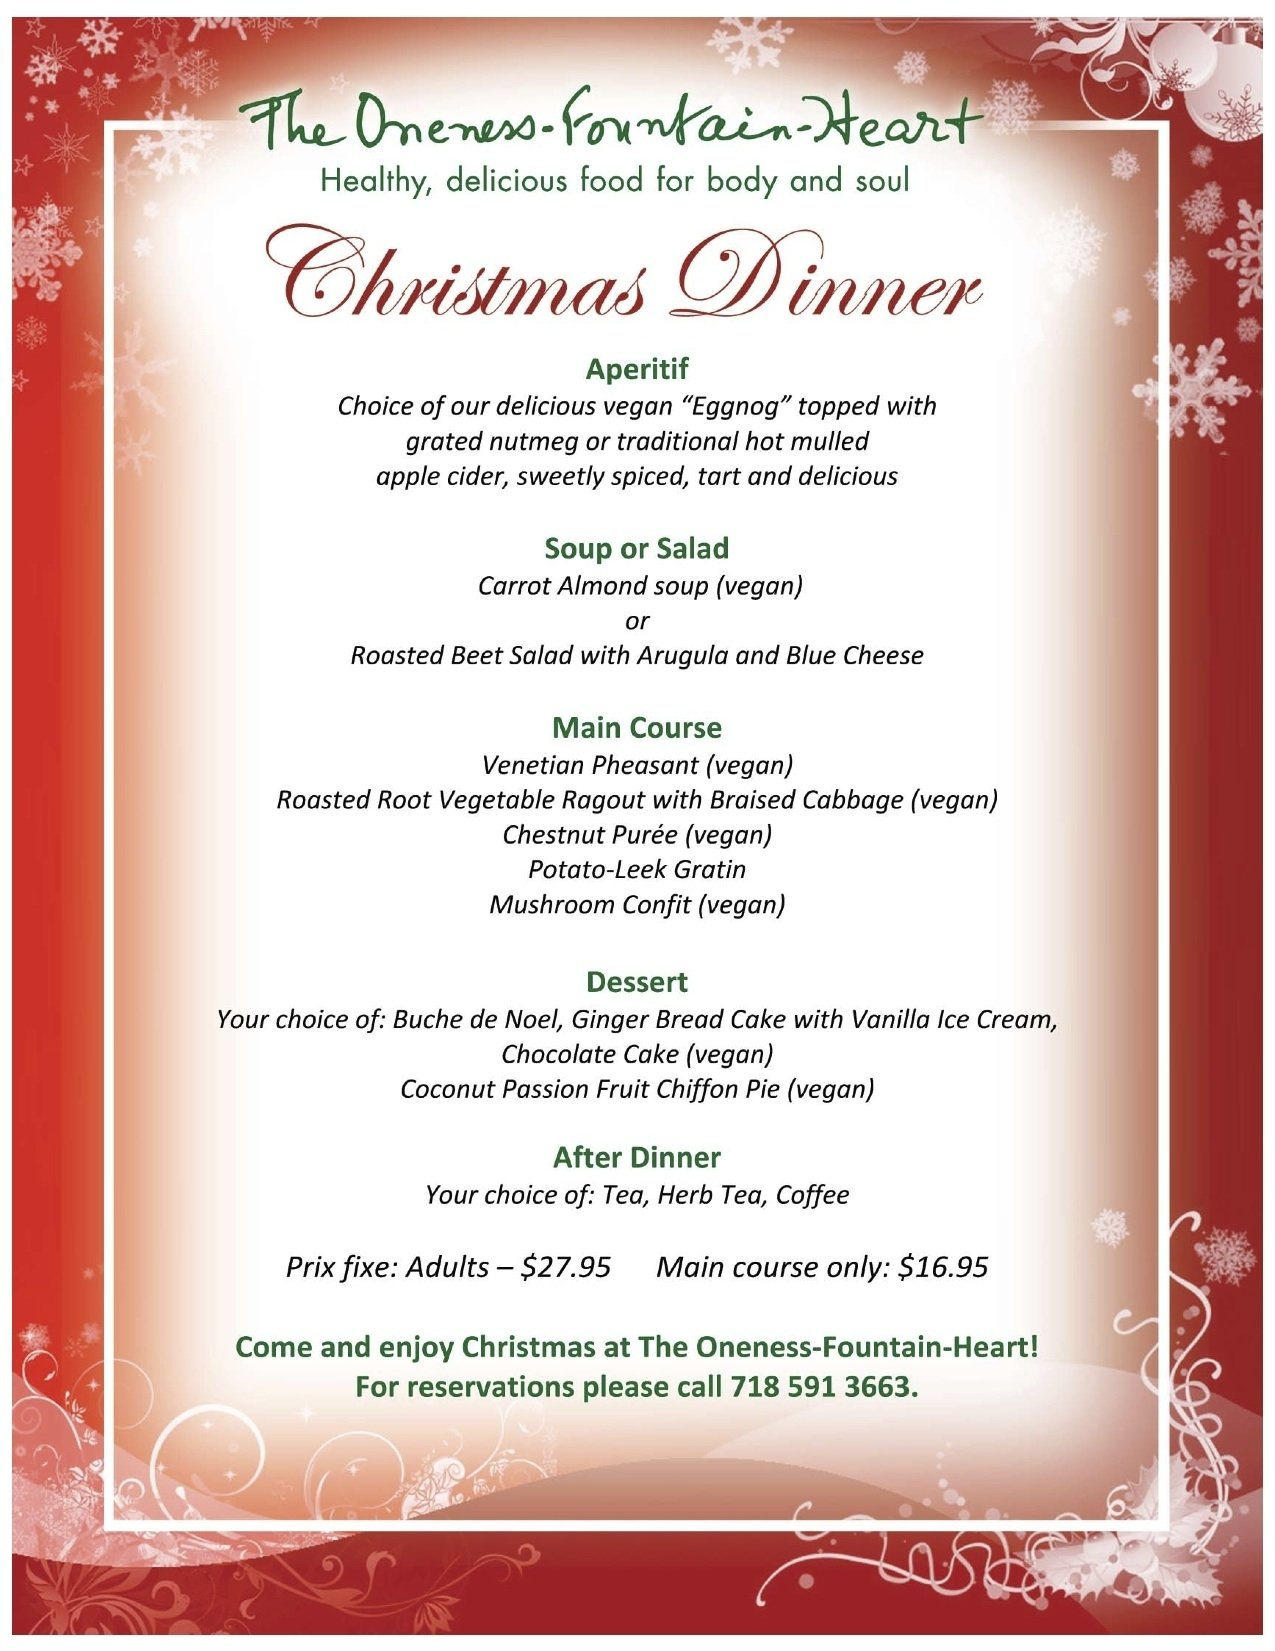 10 Cute Traditional Christmas Dinner Menu Ideas christmas at the oneness fountain heart the oneness fountain heart 2021